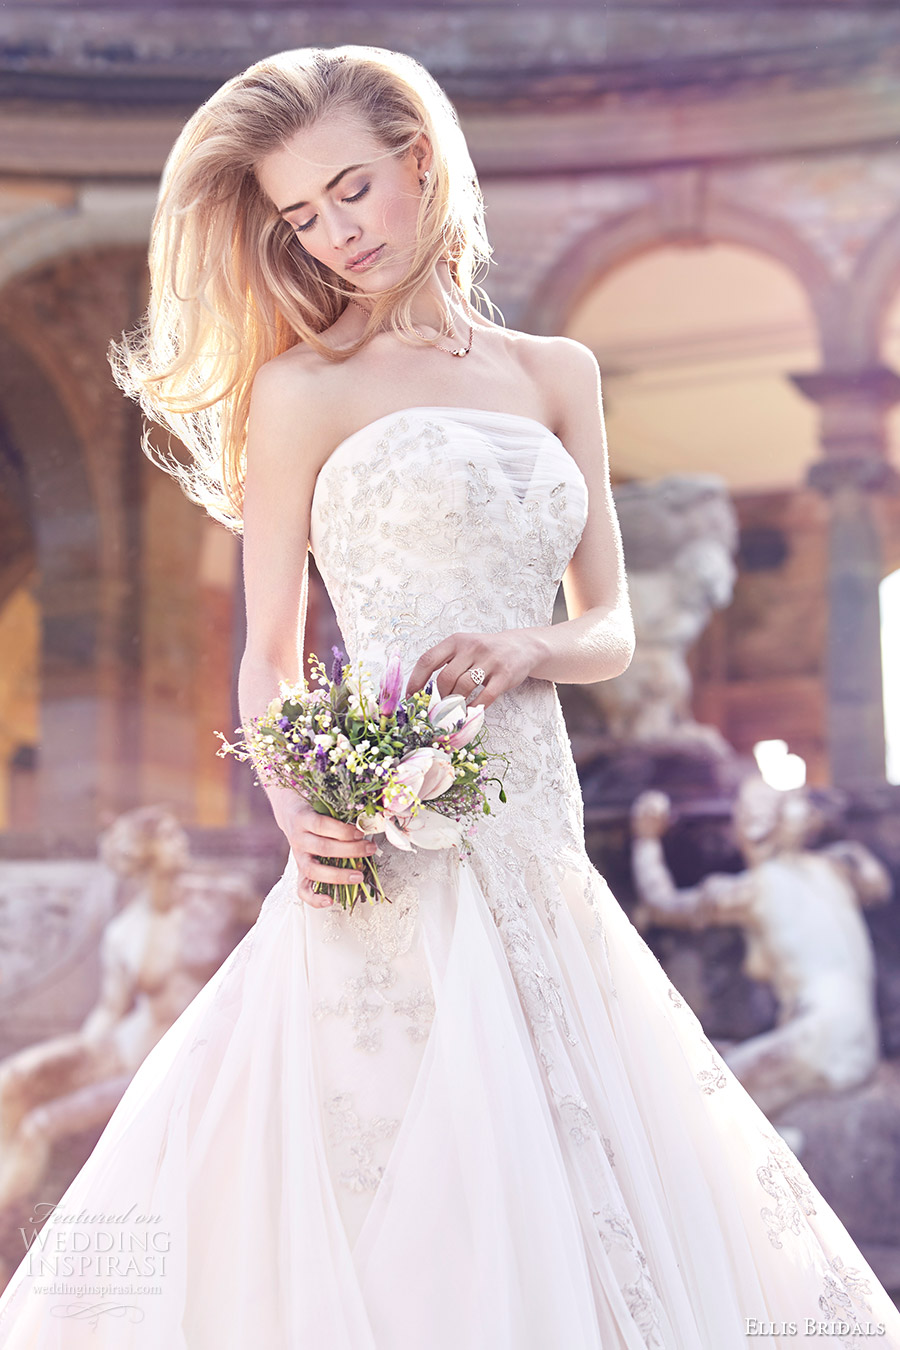 Awesome Wedding Dresses For 2nd Weddings Vignette - Wedding Dress ...